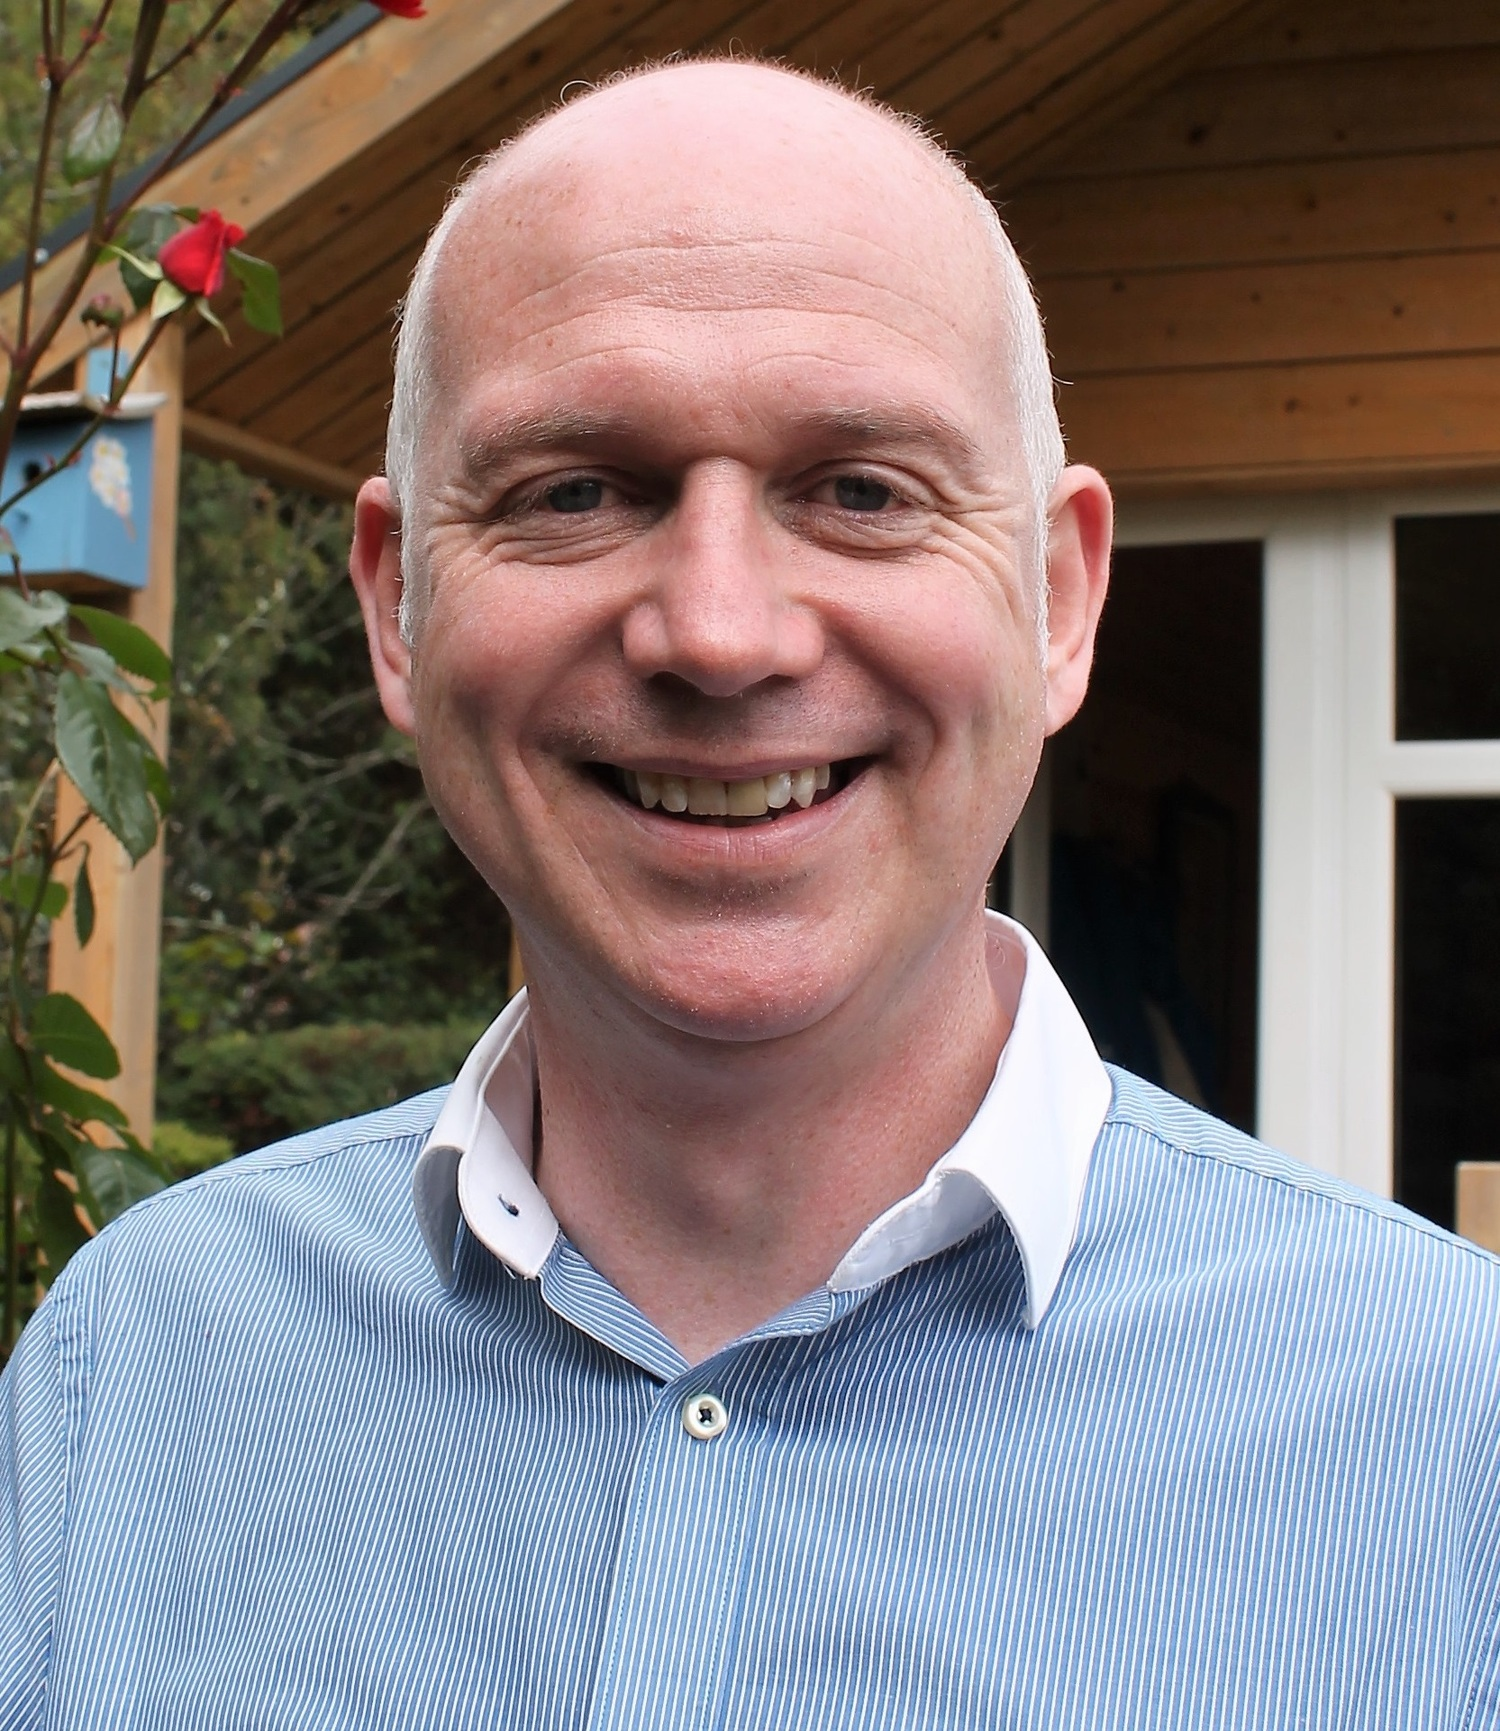 Barry Smyth is operations manager for the Alzheimer's Society in Northern Ireland.